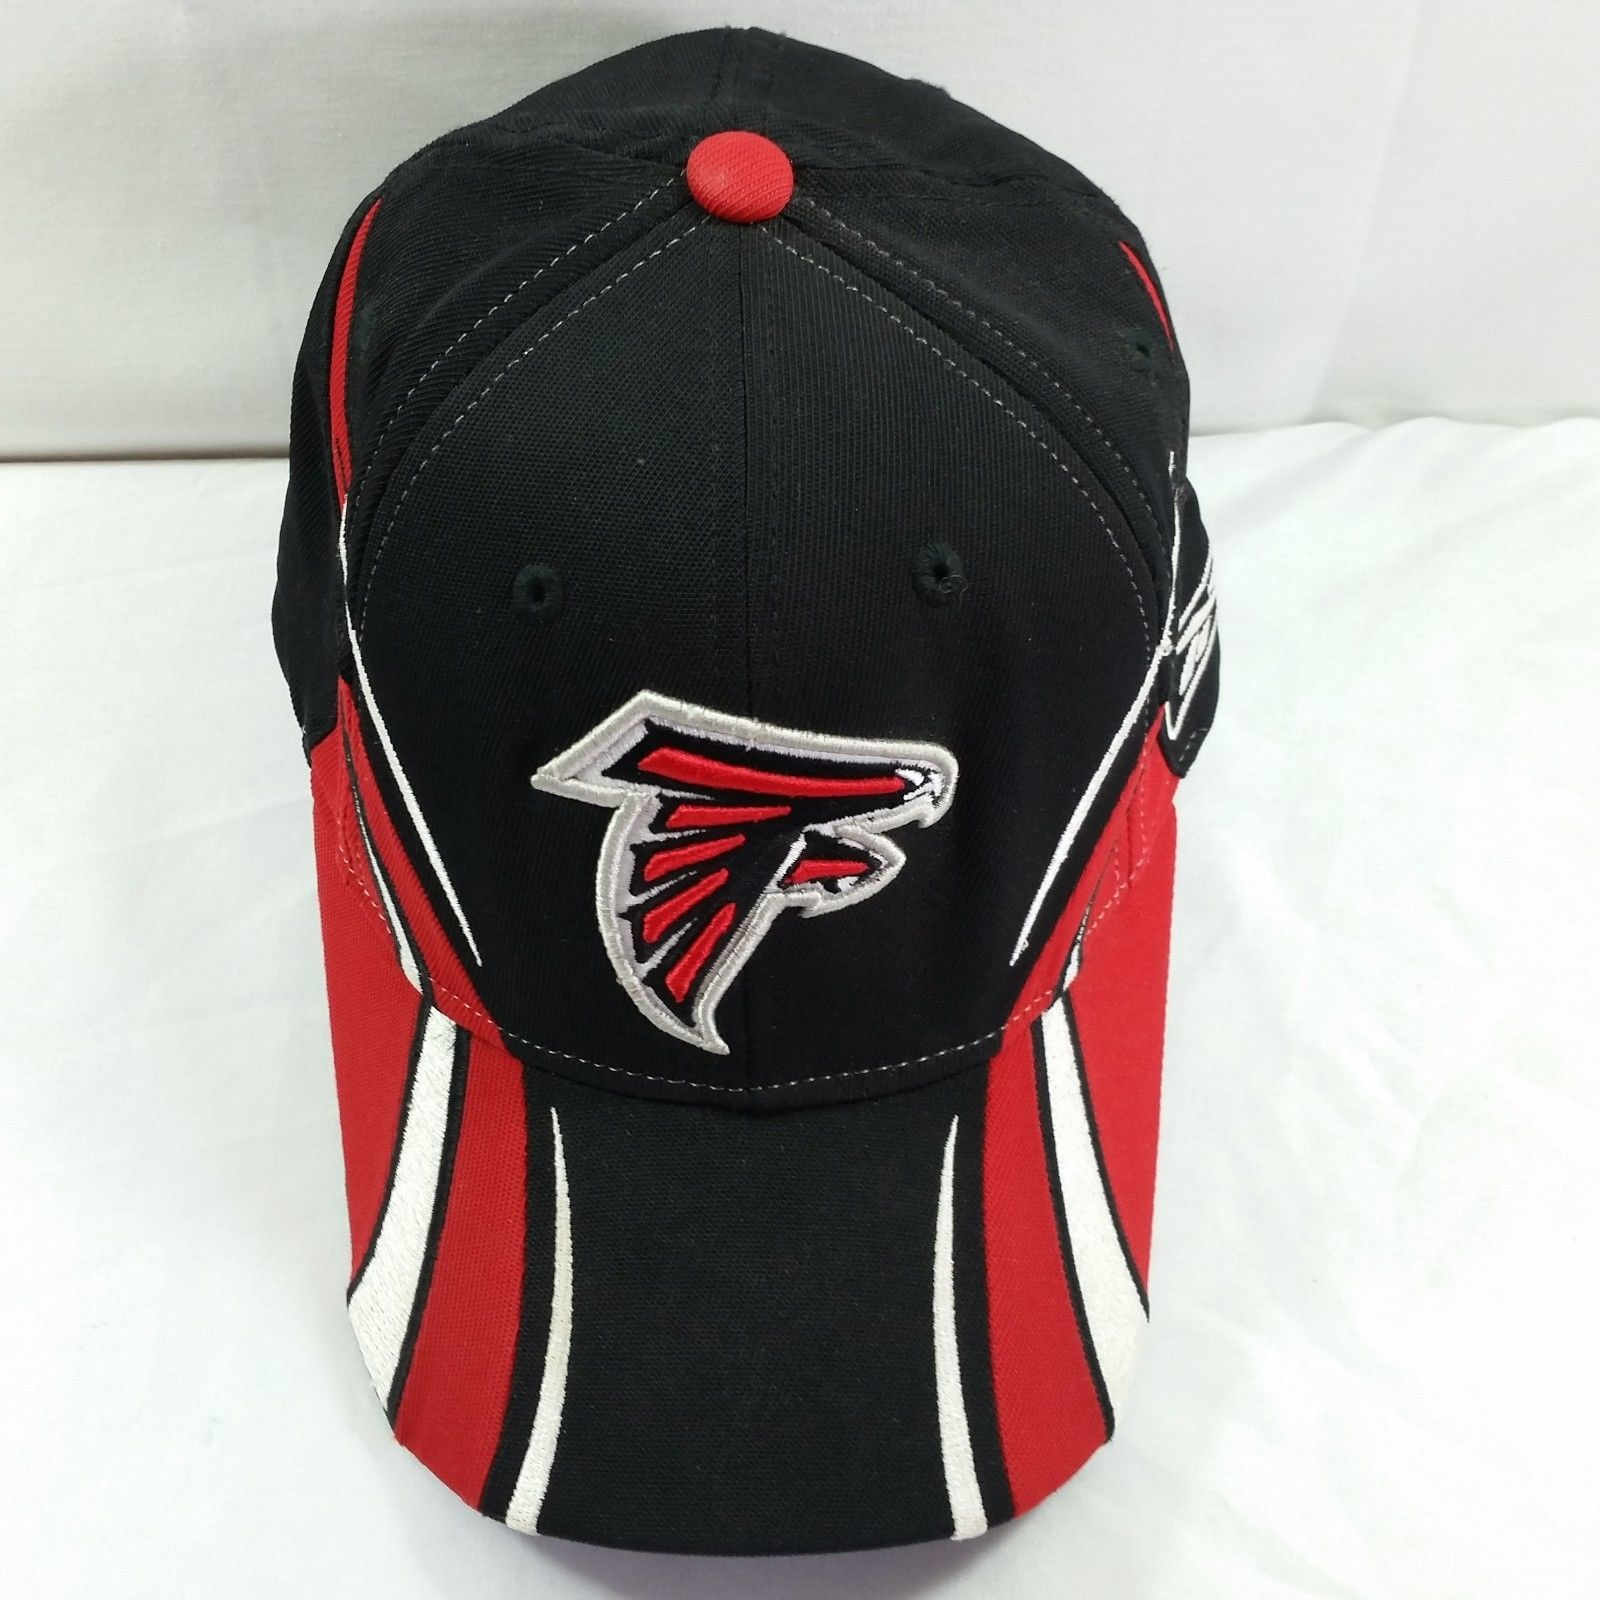 068e07dc45ceee Atlanta Falcons NFL Hat One Size Fits All Fitted Football Reebok Cap Black  Red